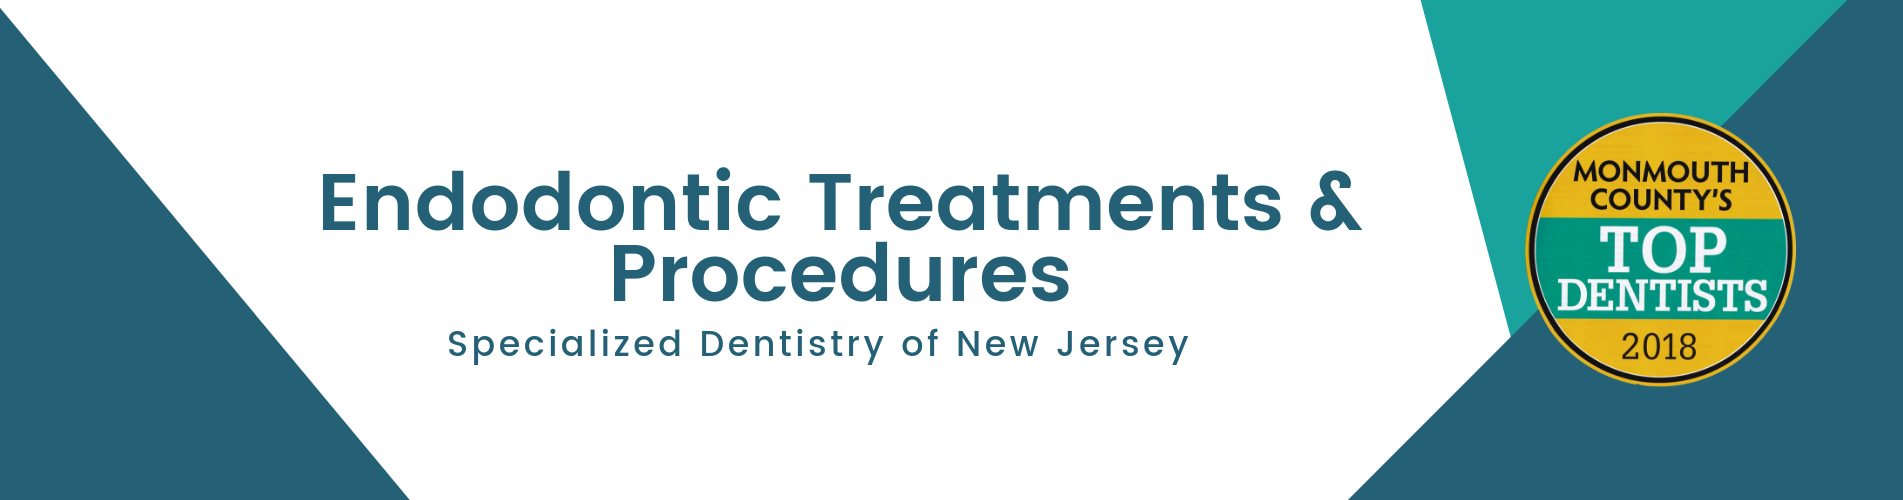 endodontic procedures from specialized dentistry of new jersey